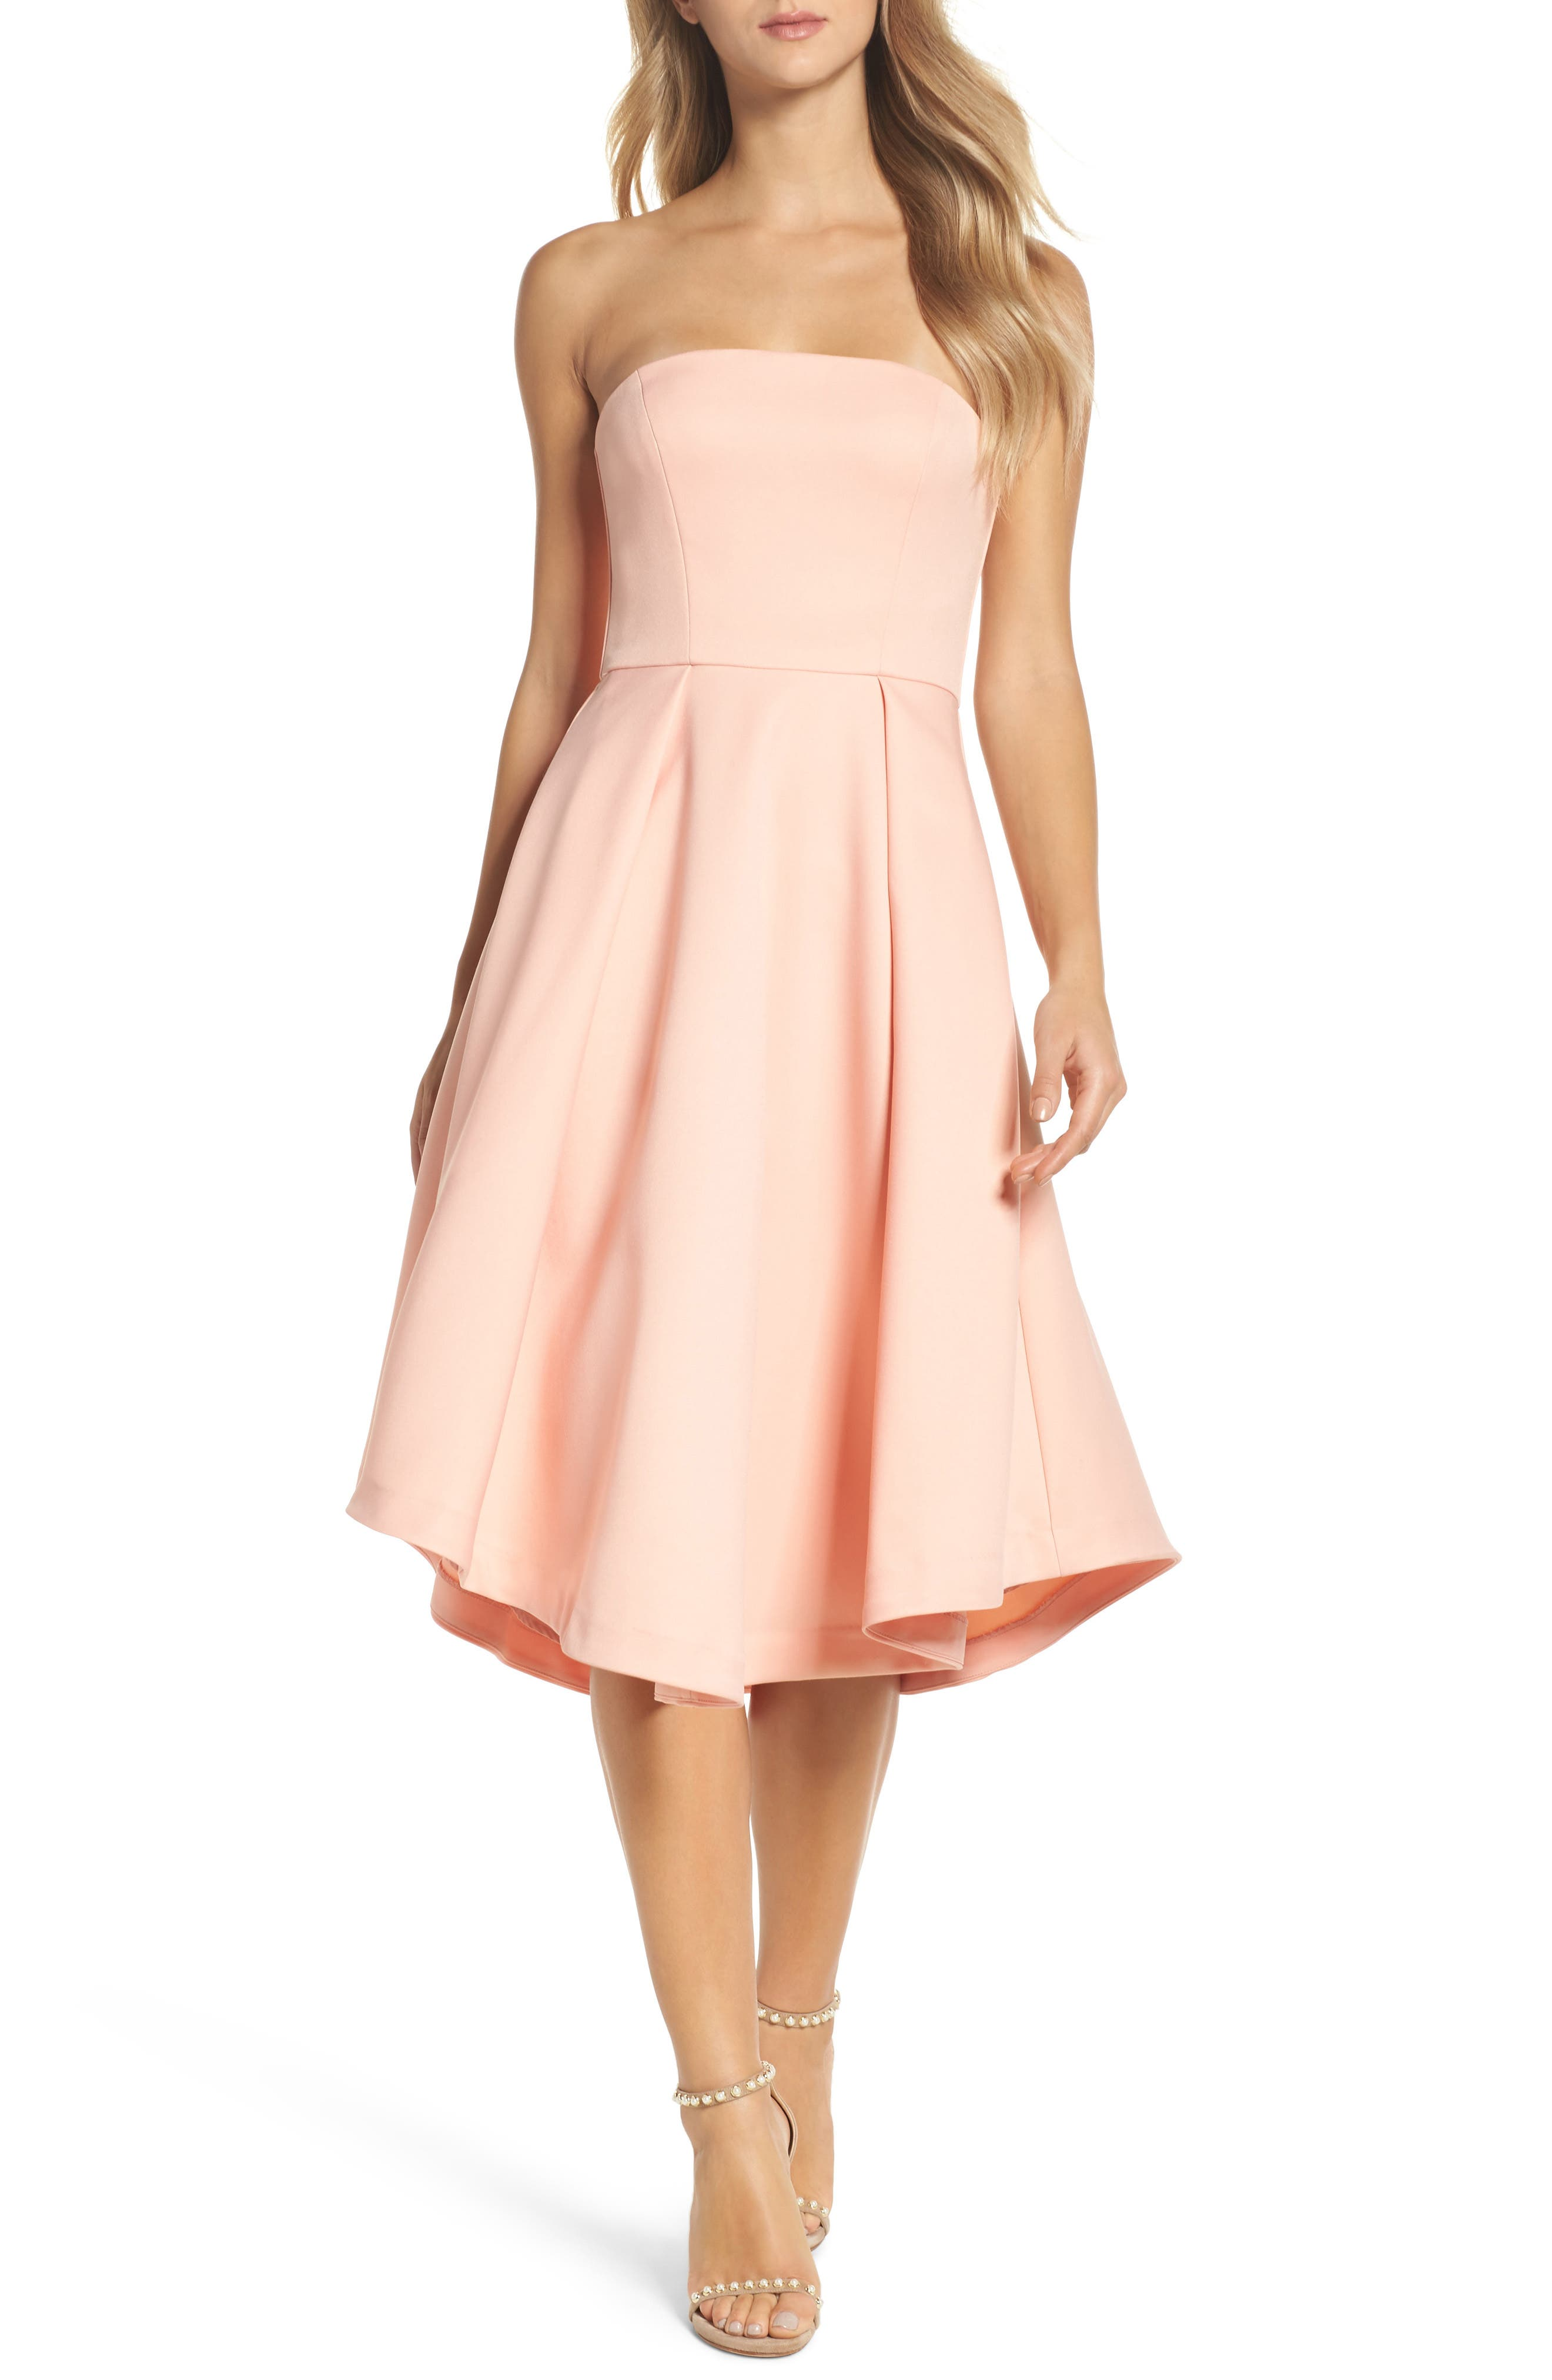 Shuvee Strapless Fit & Flare Dress,                         Main,                         color, Cosmetic Pink